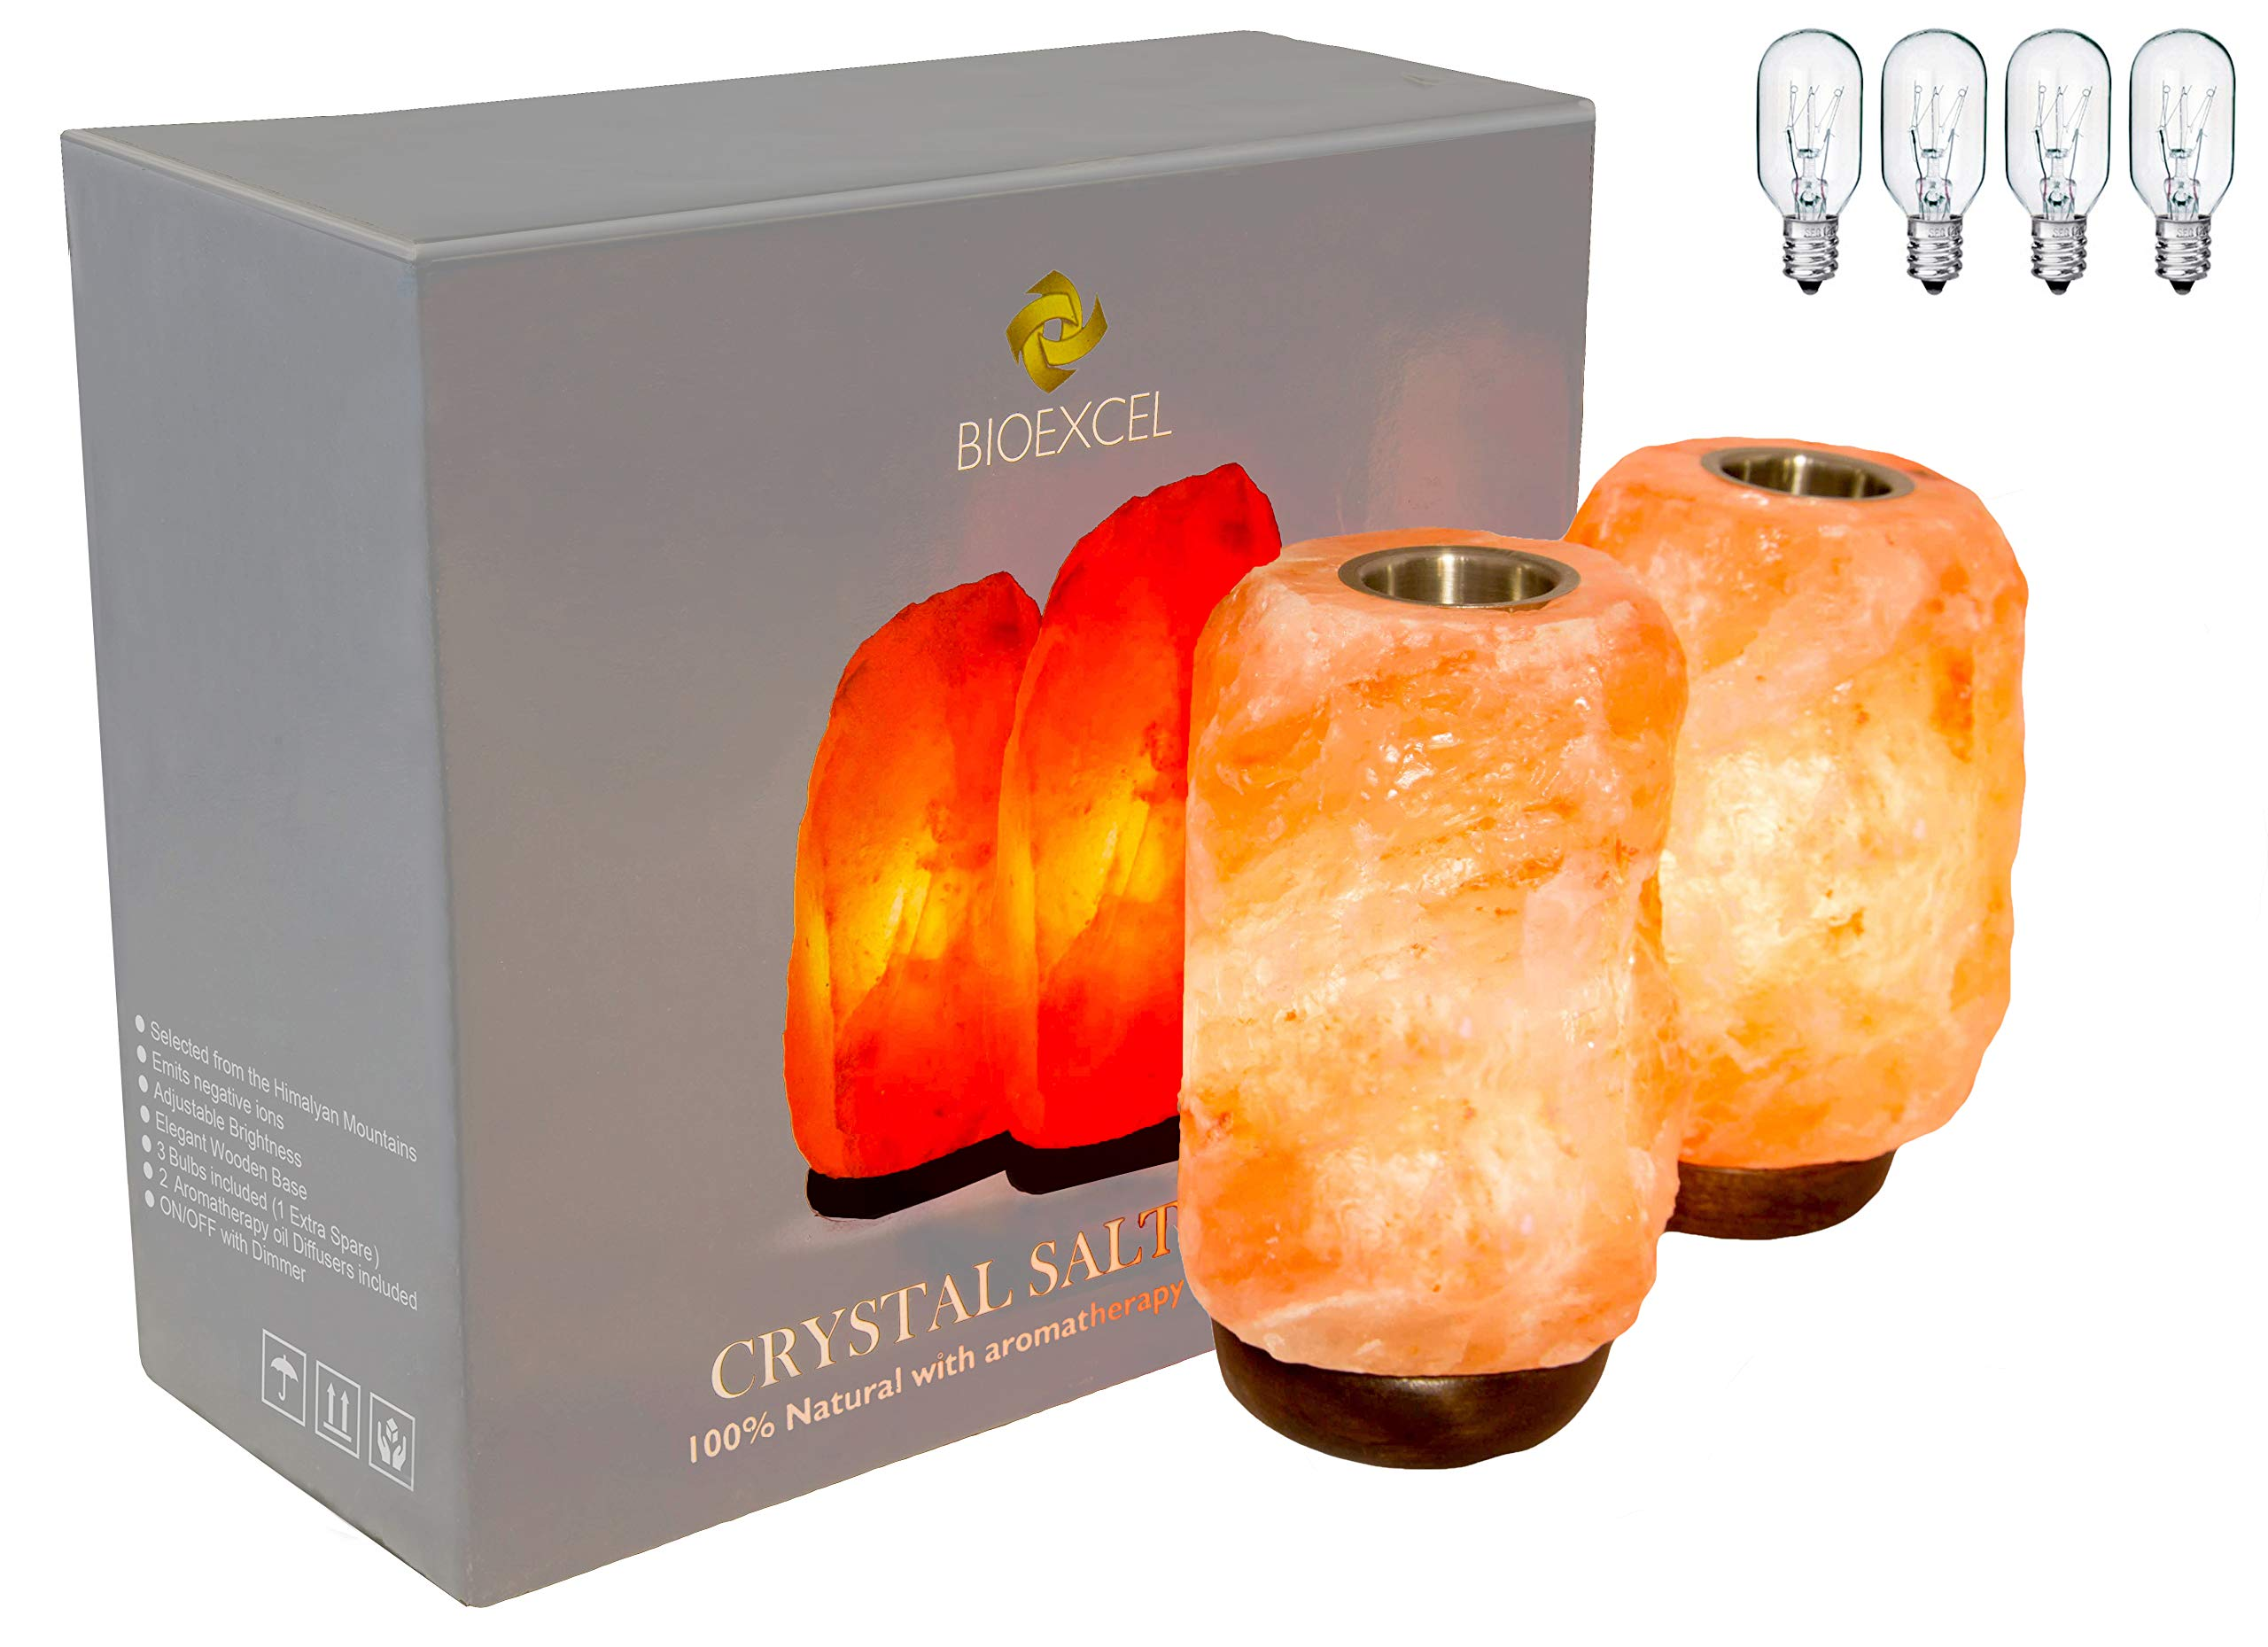 Bioexcel Pack of 2 Aroma Himalayan Salt Lamp With Dimmer & Small Plate To Diffuse Essential Oils – Salt Lamp Night Light Aromatherapy - Wood Base Hand Carved | 5-7 lbs - 4 Bulbs 25 Watts